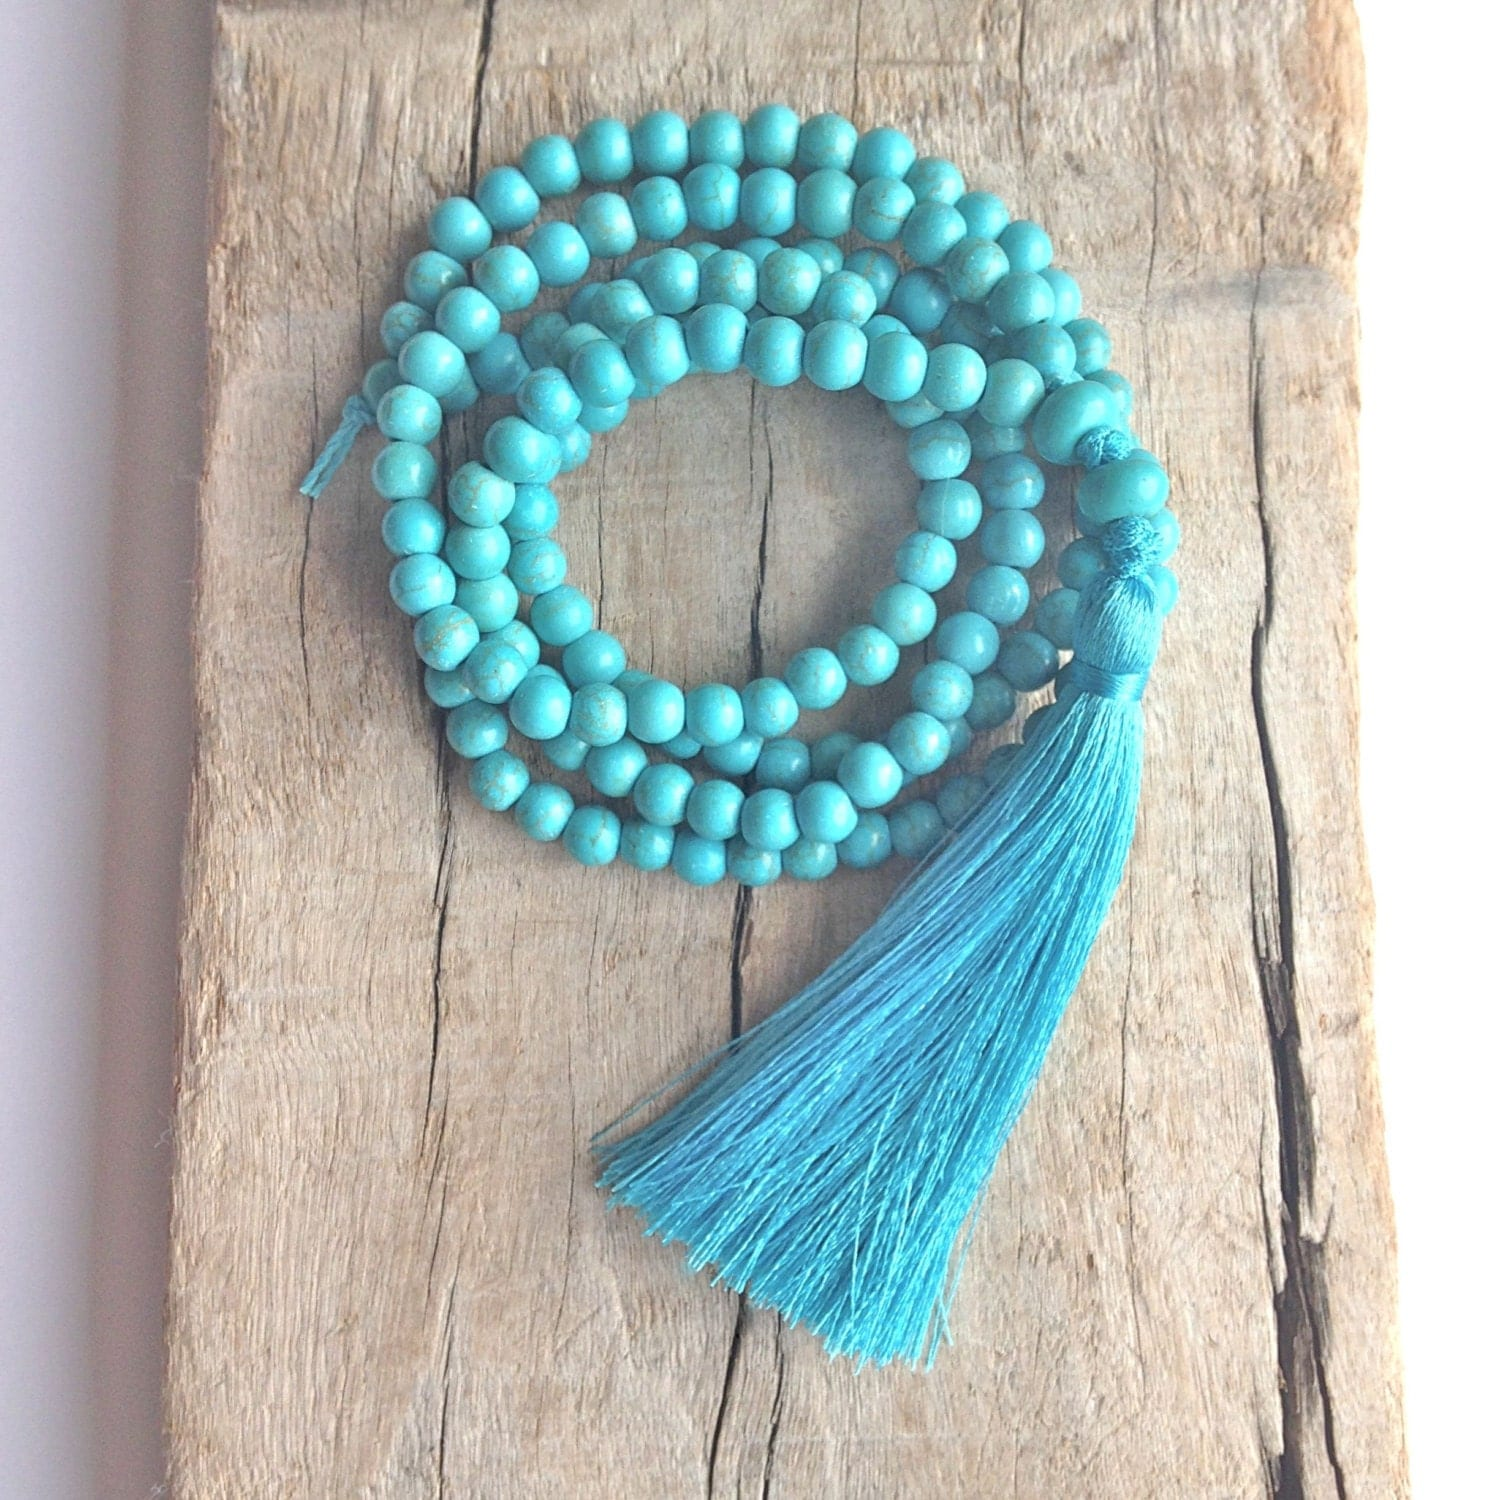 tassel necklace turquoise beaded necklace bohemian jewelry. Black Bedroom Furniture Sets. Home Design Ideas